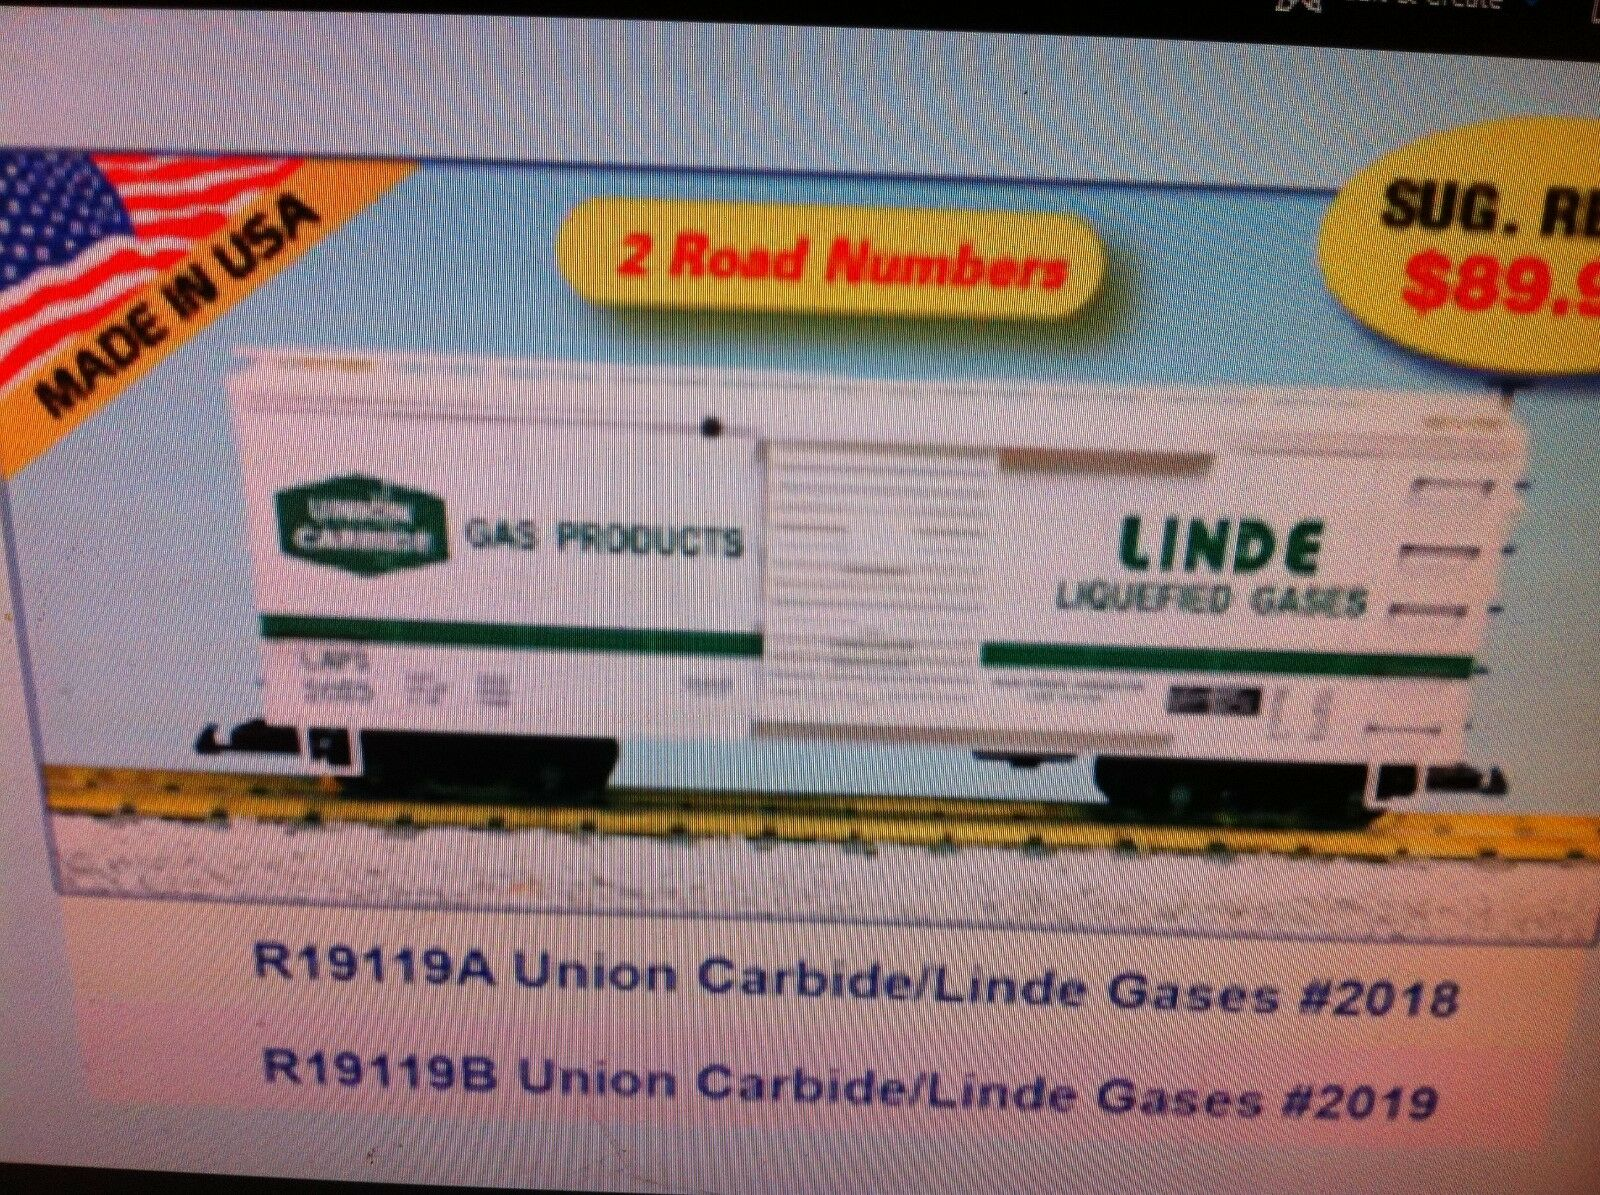 USA Trains G Scale R19119A Union Carbide Linde Gases WHITE Rd NEW RELEASE